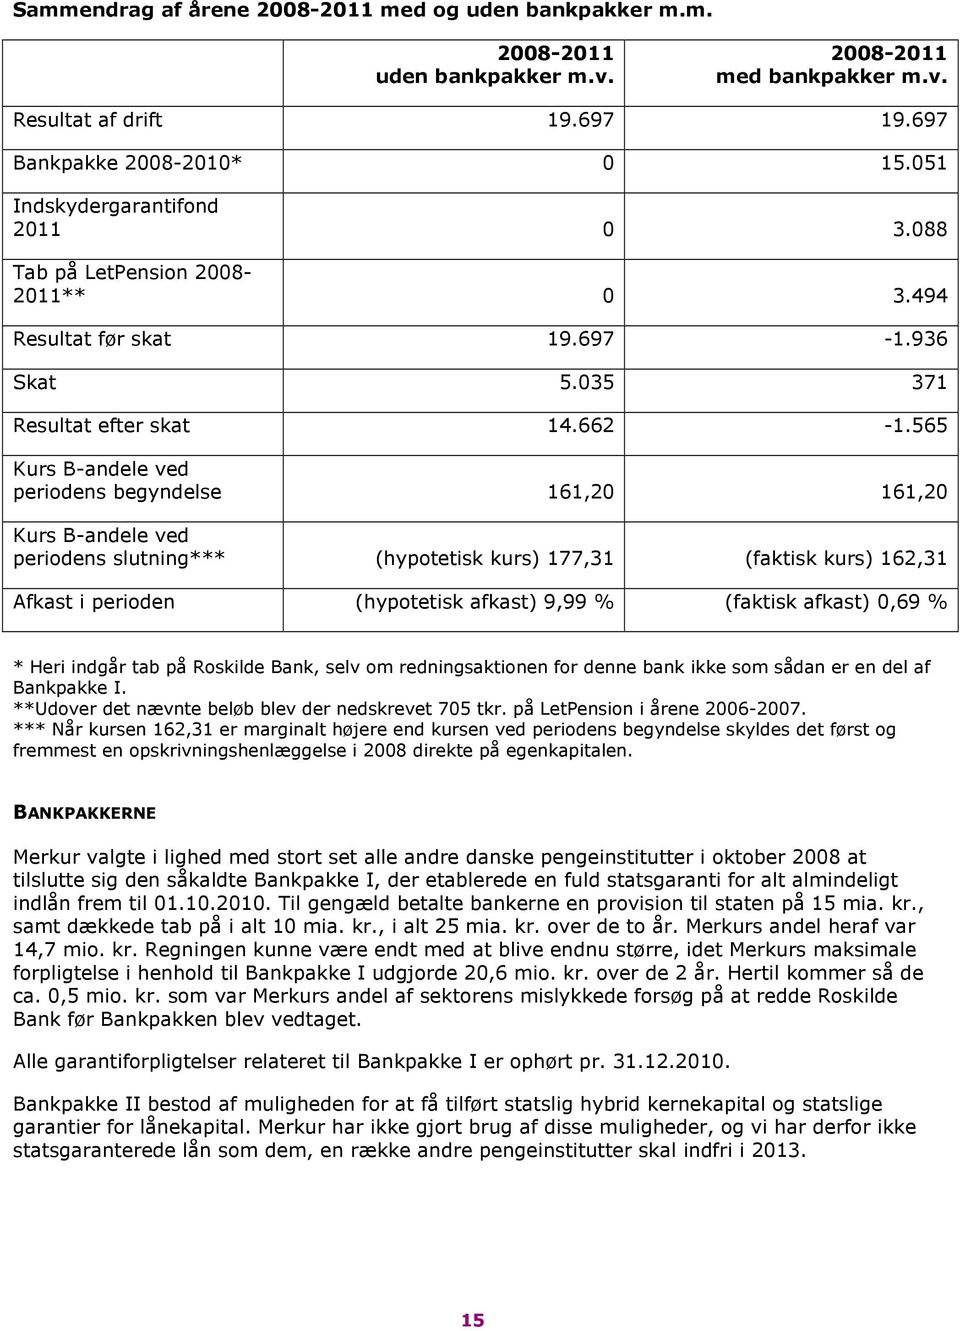 565 Kurs B-andele ved periodens begyndelse 161,20 161,20 Kurs B-andele ved periodens slutning*** (hypotetisk kurs) 177,31 (faktisk kurs) 162,31 Afkast i perioden (hypotetisk afkast) 9,99 % (faktisk